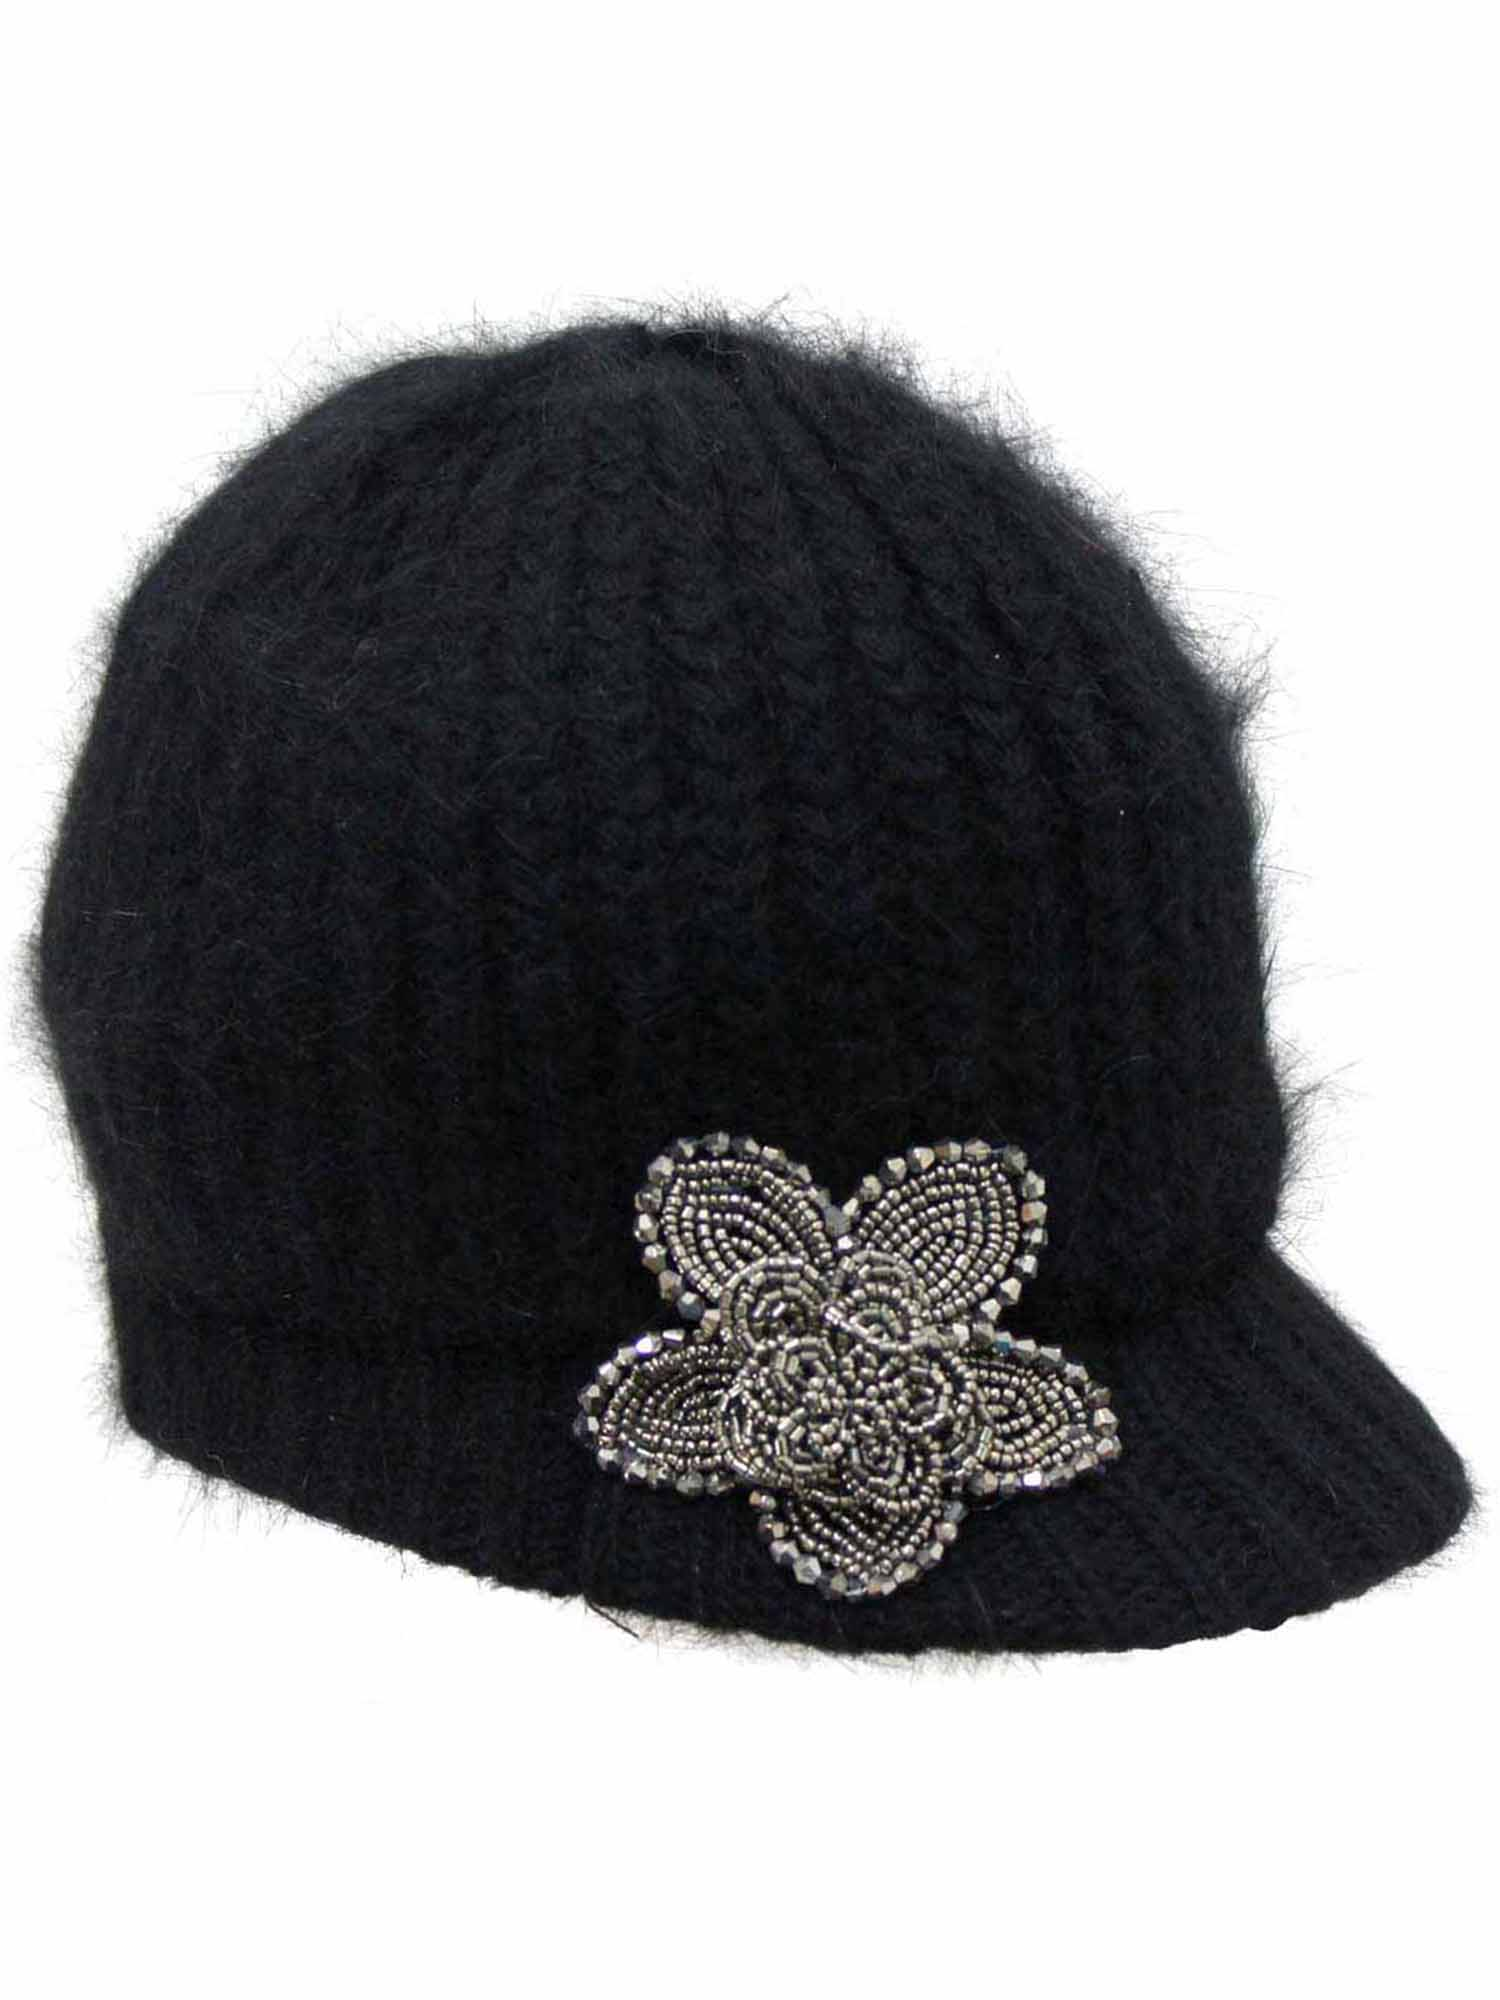 3b361c3e5ff purchase knit newsboy hats ebay 13a42 19ba2